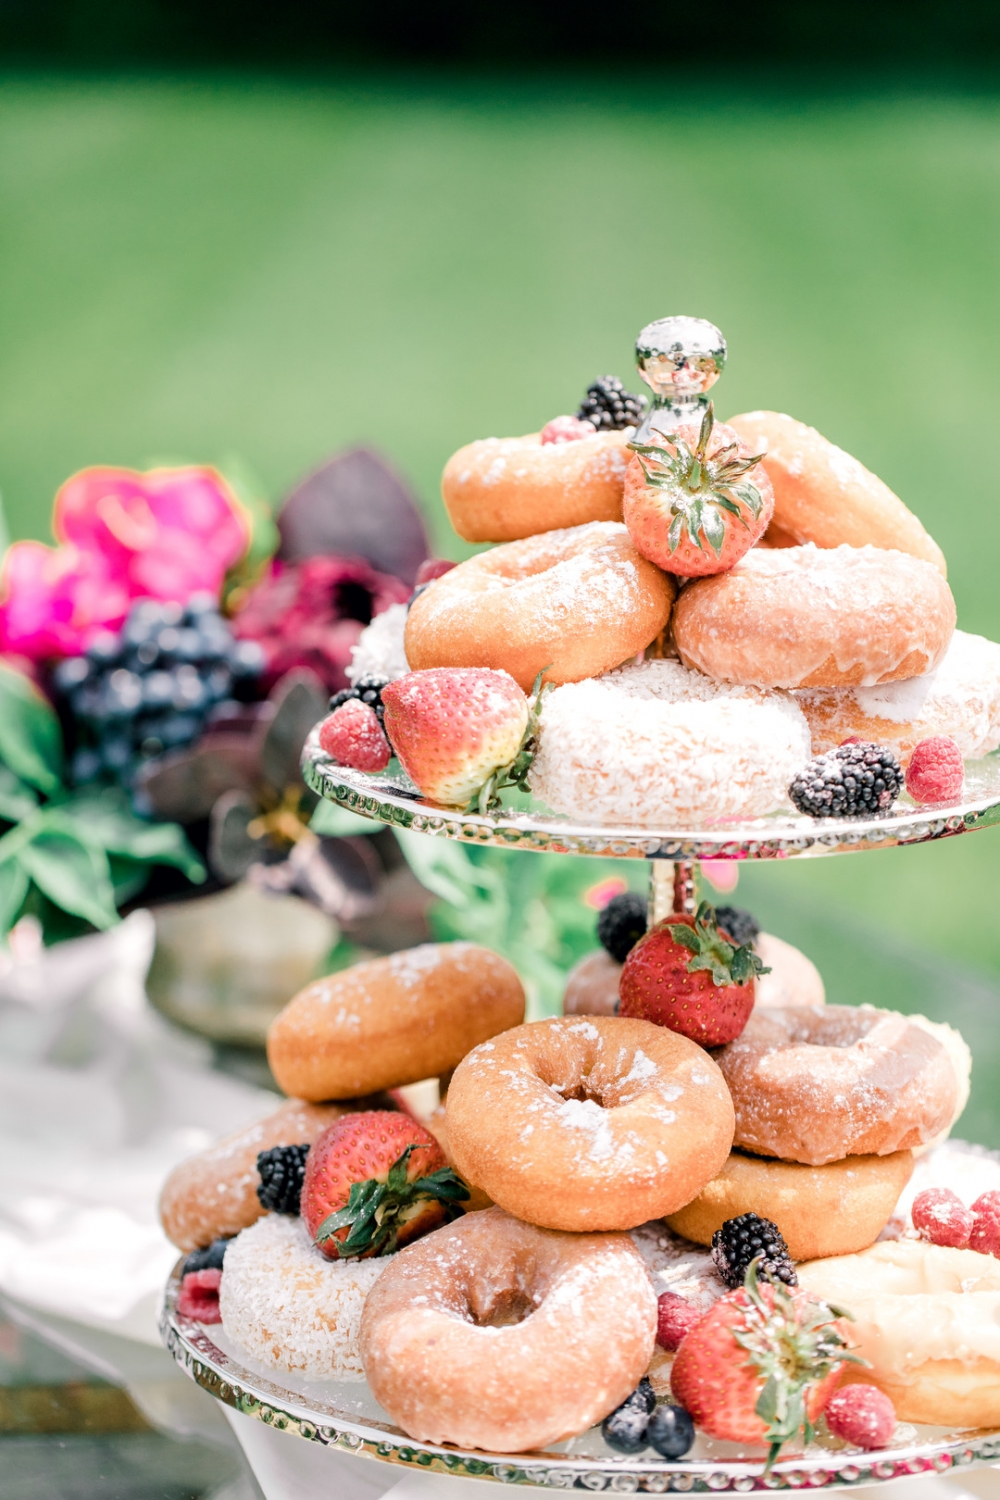 Donut tower with fresh fruit and berries